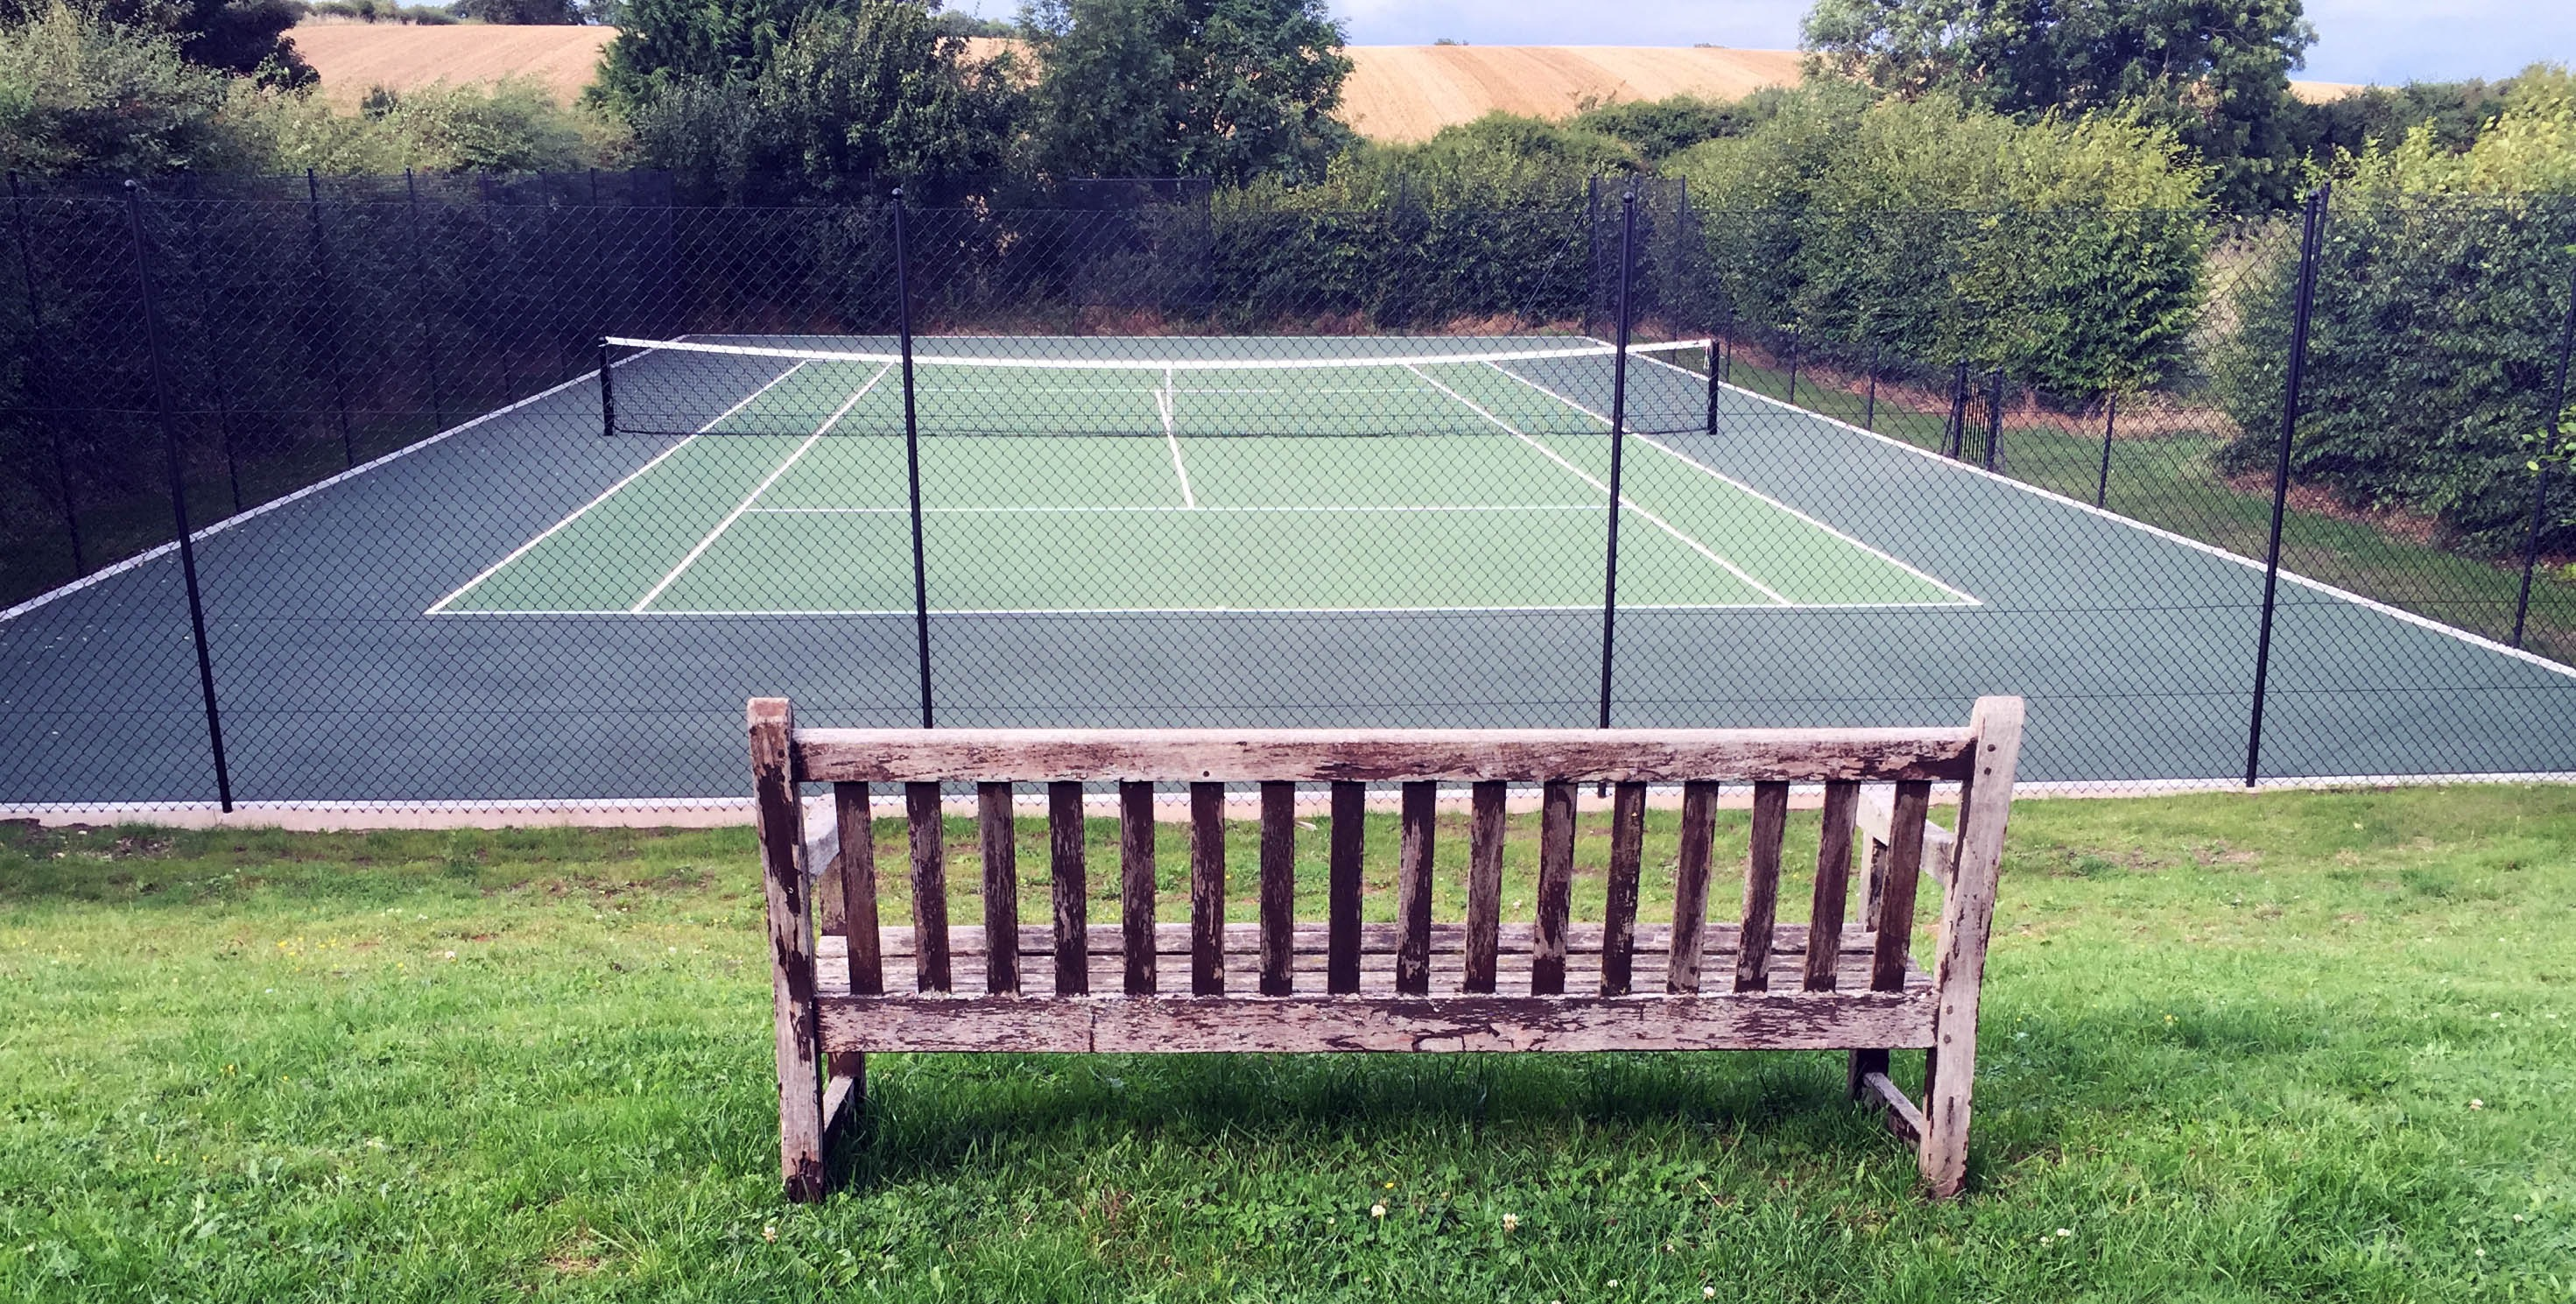 The all weather tennis court.